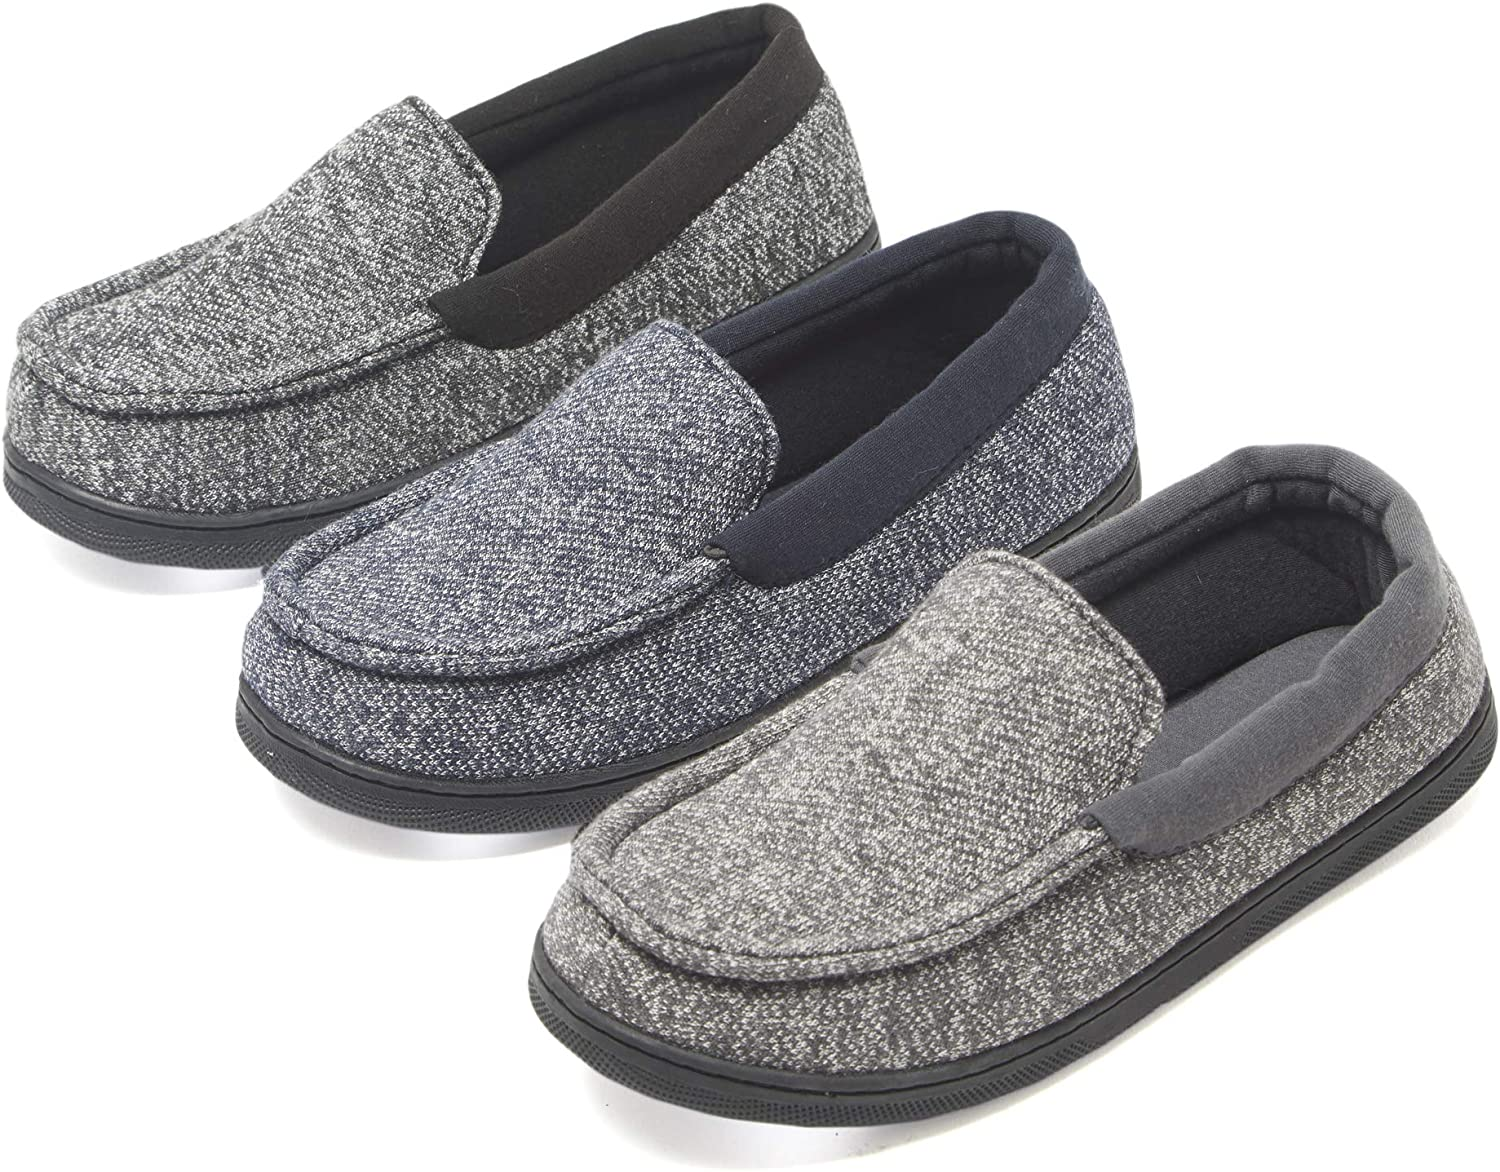 Hanes Boys Slipper Moccasin House Shoe with Indoor Outdoor Memory Foam Sole Fresh IQ Odor Protection